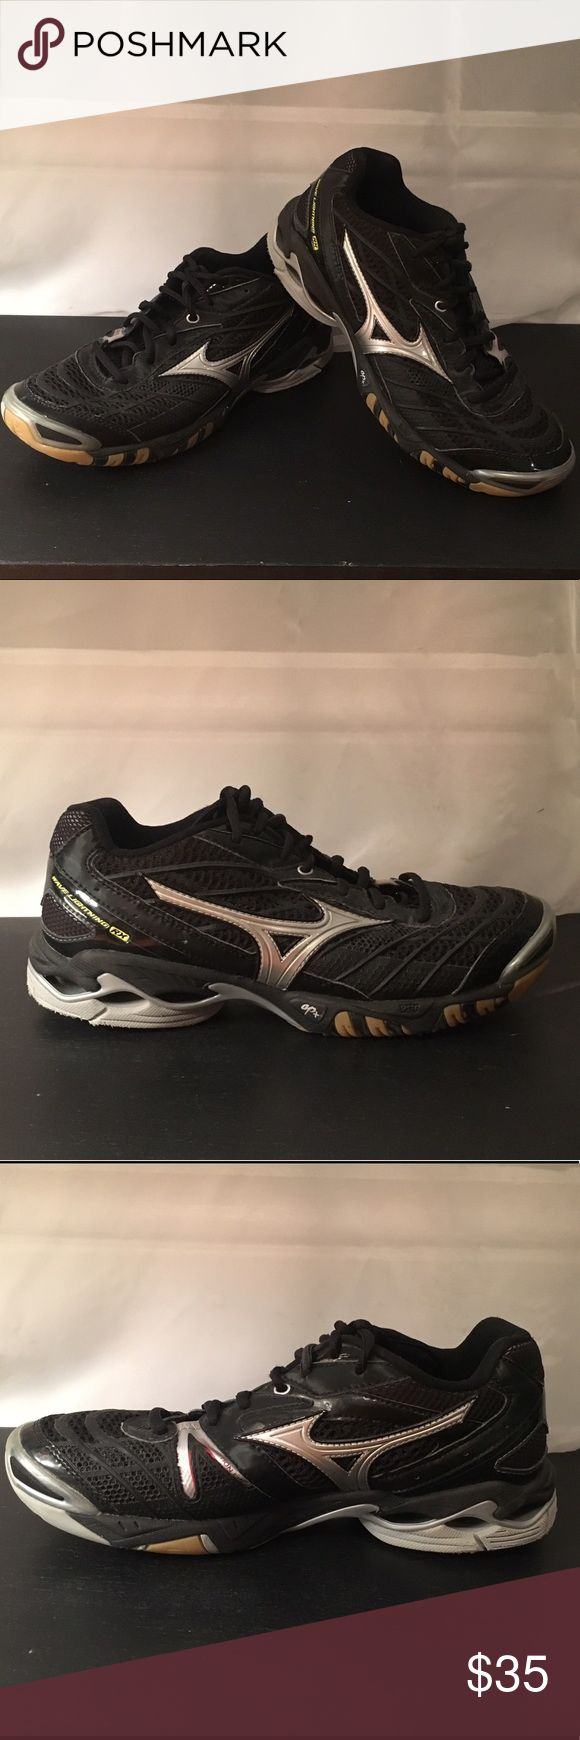 Mizuno Volleyball Shoes Mizuno Wave Lightning RX volleyball shoes. Worn one season inside only. Still in excellent condition. Size 8.5. Mizuno Shoes Athletic Shoes